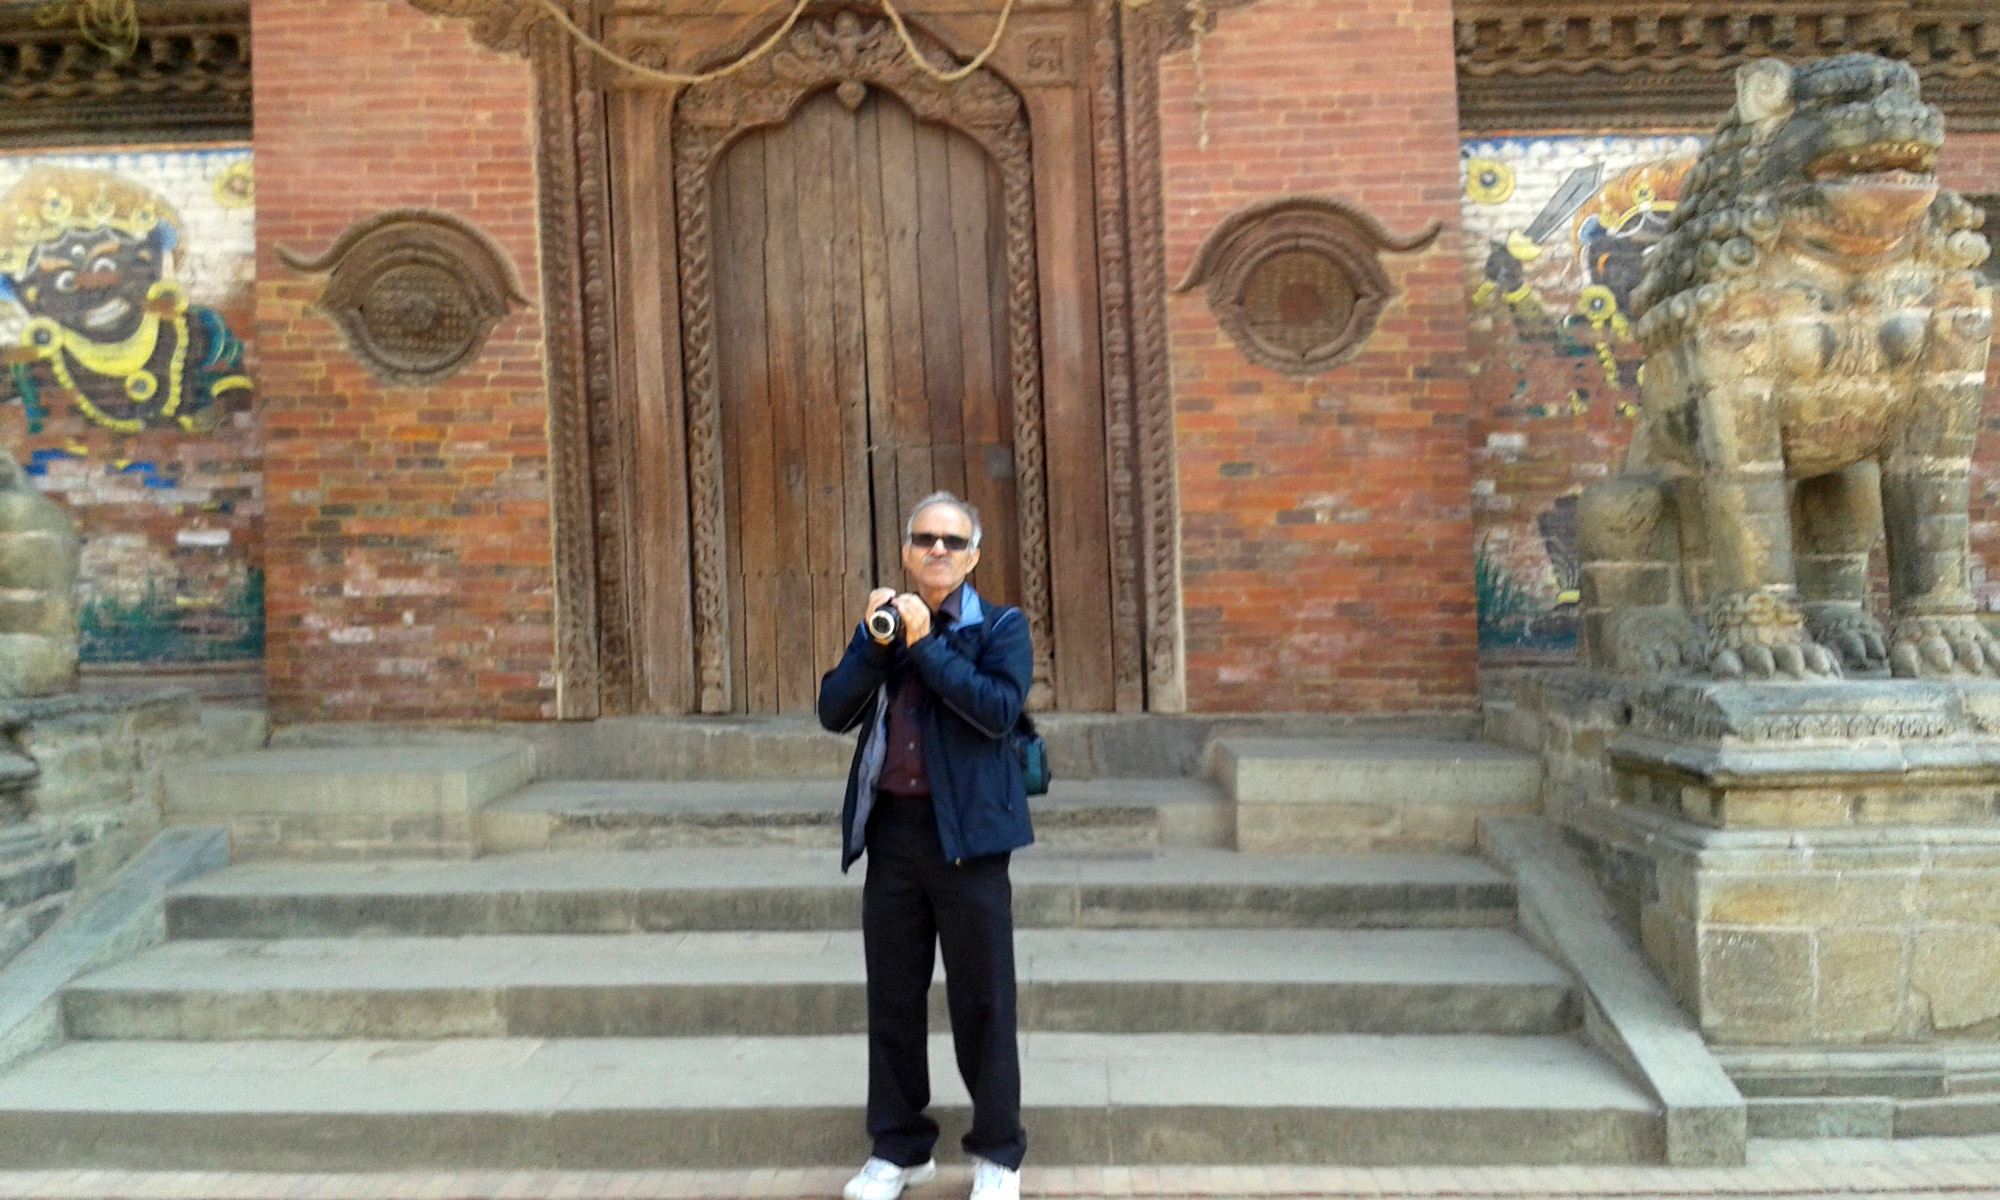 Photo was taken at Patan Darbar in Kathmandu, Nepal in Feb, 2015